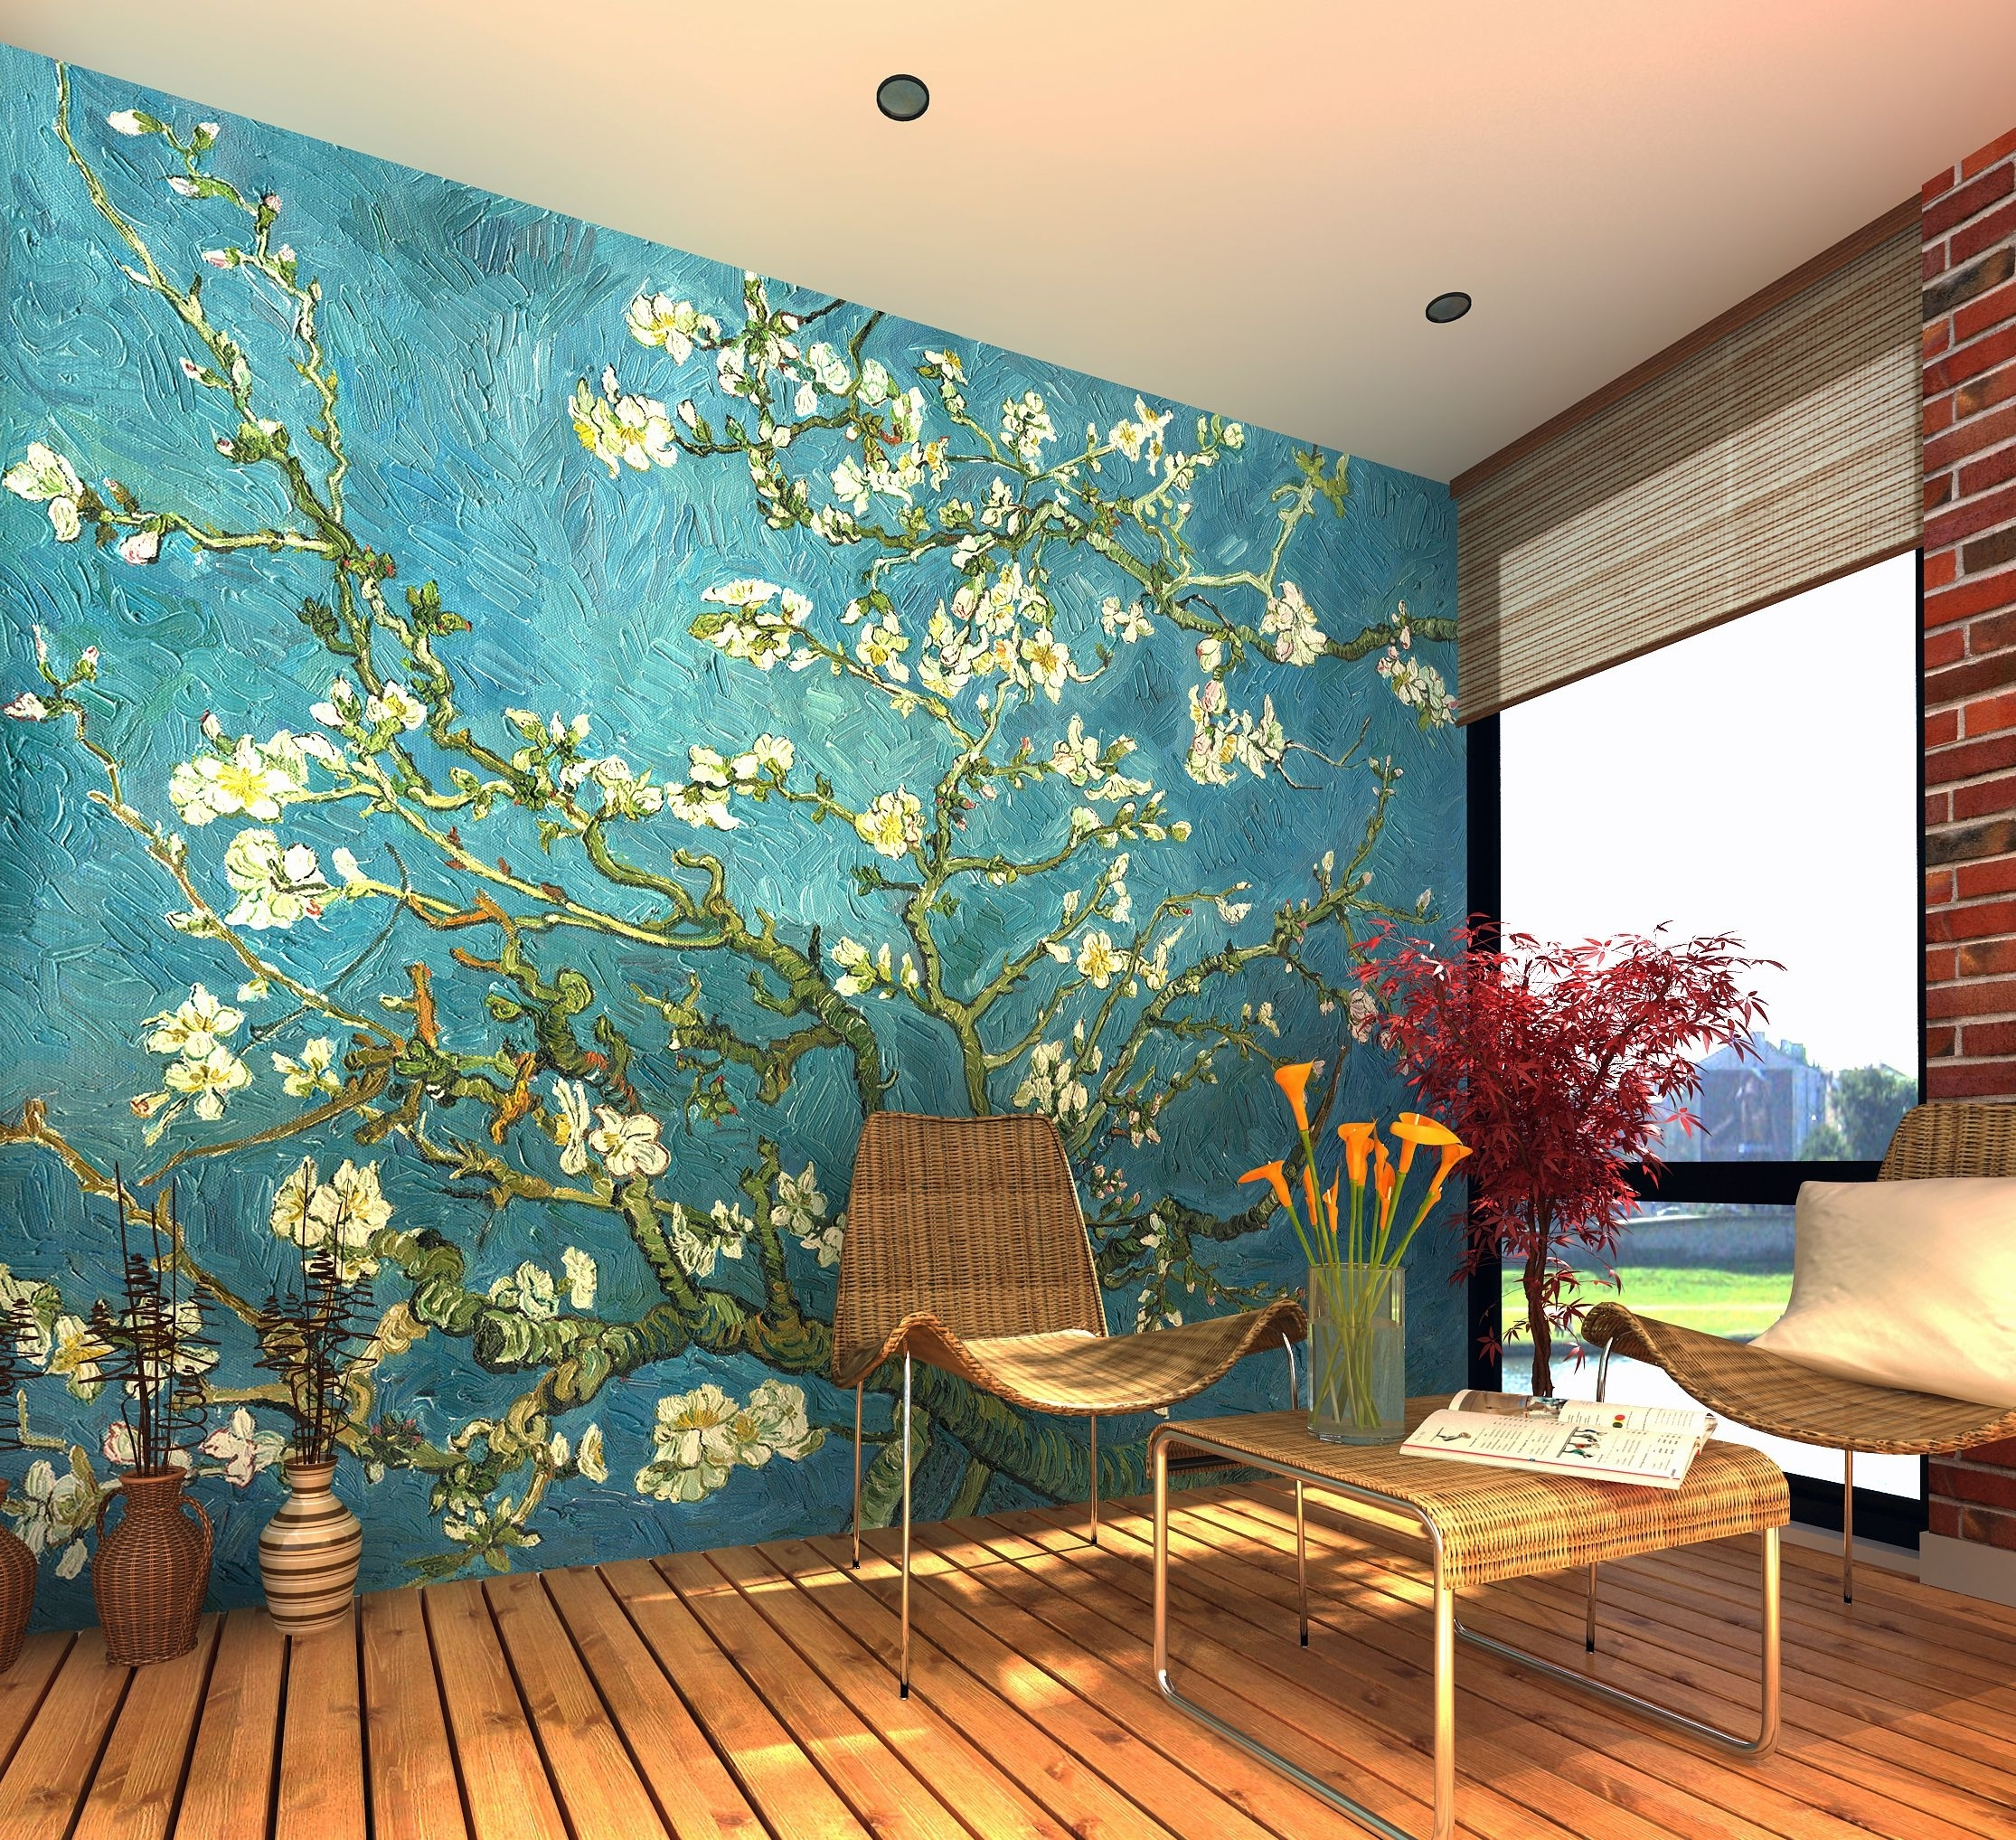 Van Gogh – Almond Blossom – Wall Mural, Wallpaper, Photowall, Home Regarding Most Up To Date Almond Blossoms Vincent Van Gogh Wall Art (View 17 of 20)